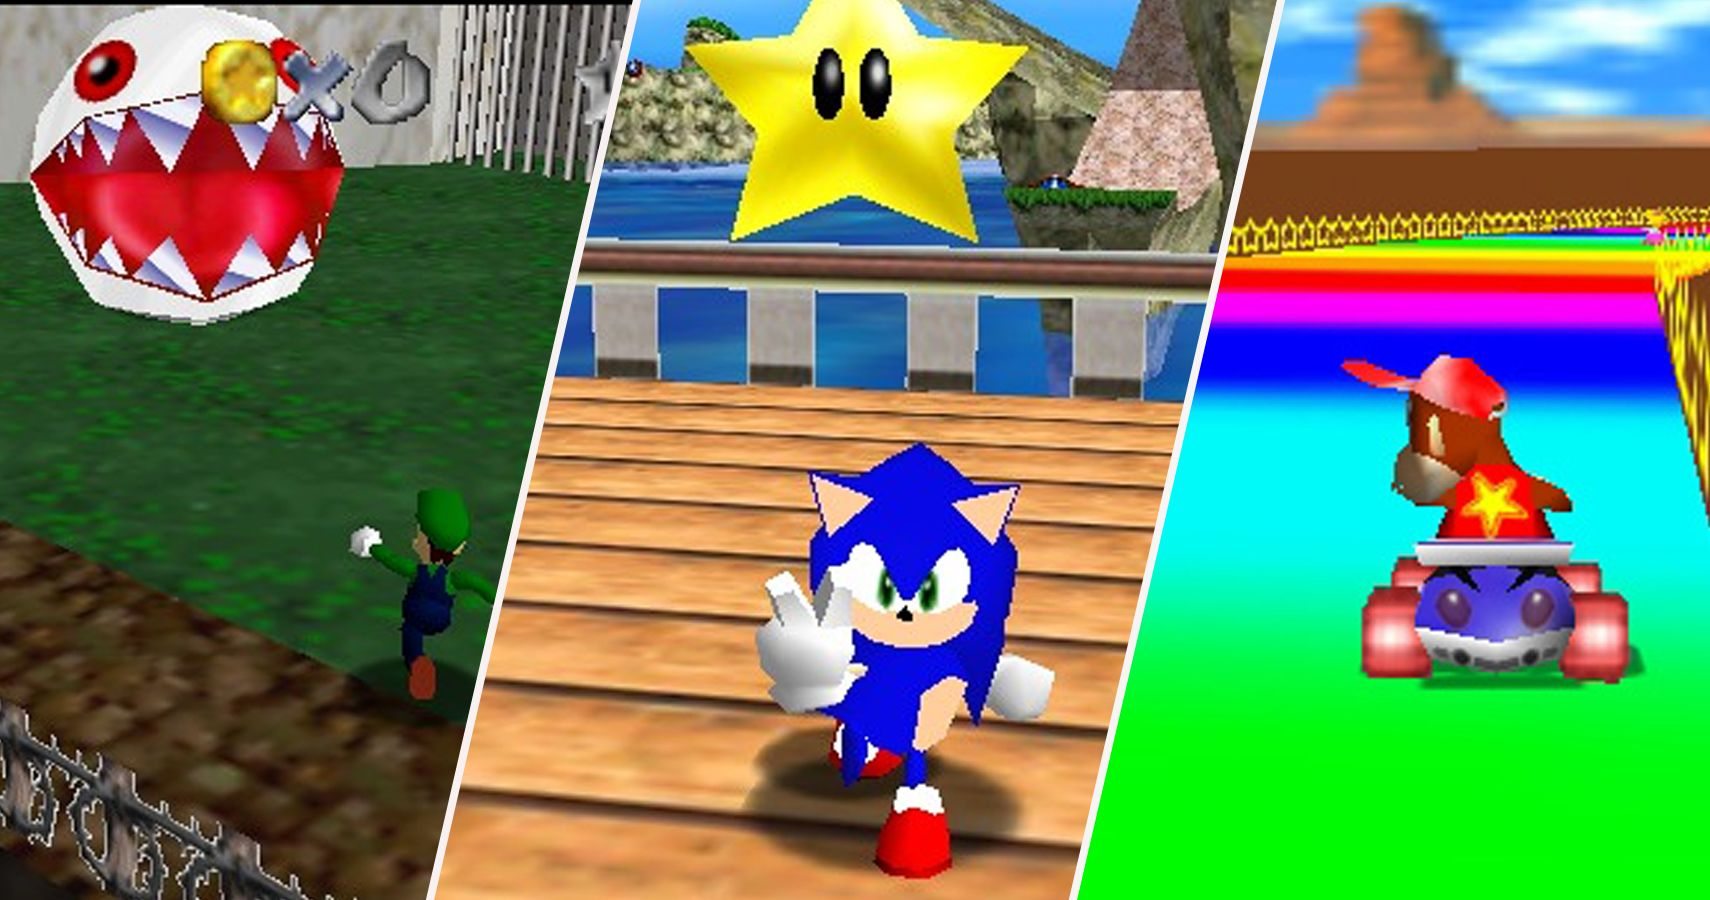 25 Nintendo 64 Hacks And Deleted Things That Old School Fans Needs